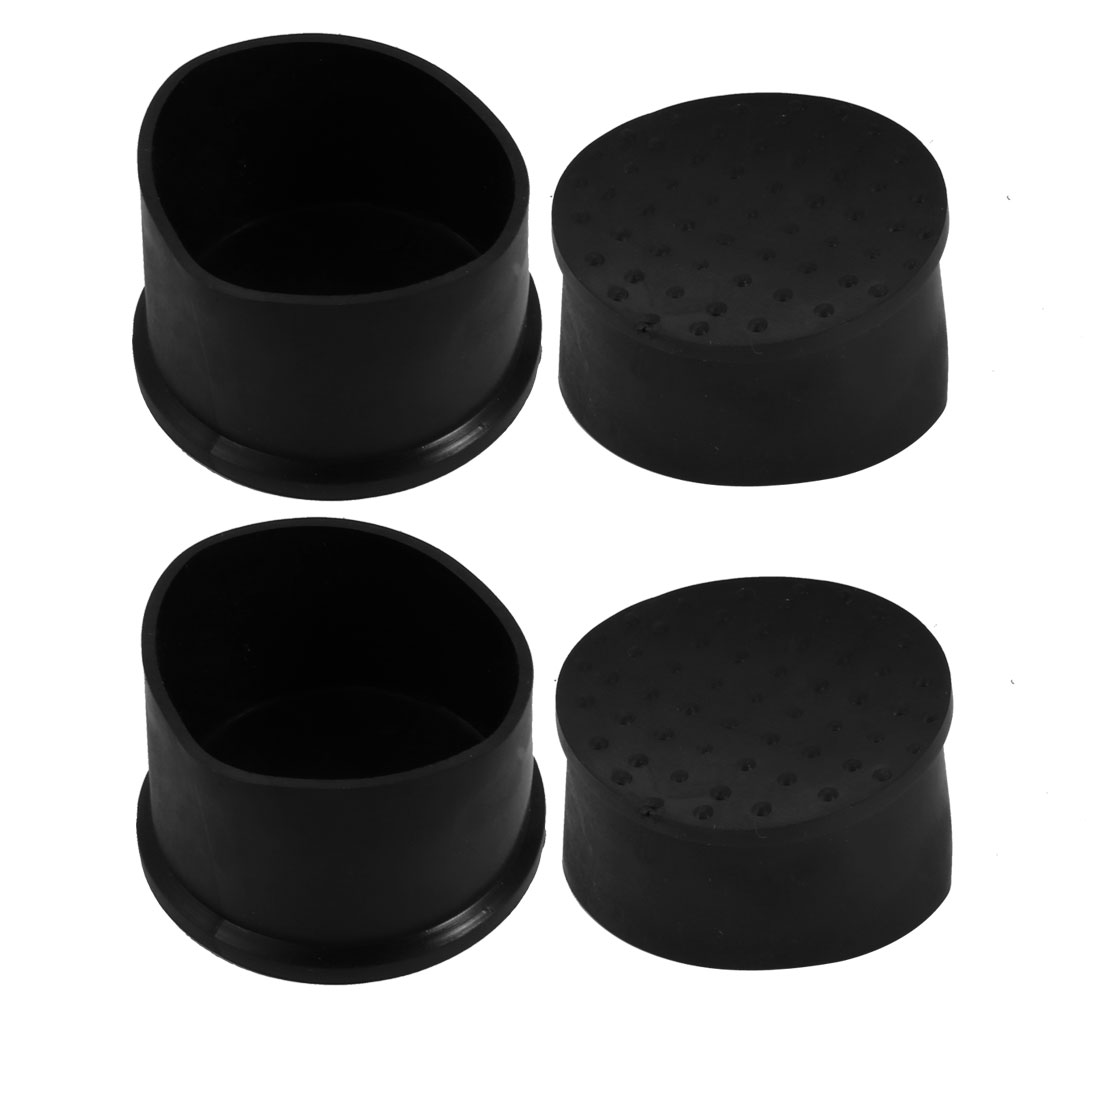 4pcs 50mm Dia Black PVC Rubber Round Cabinet Leg Insert Cover Protector